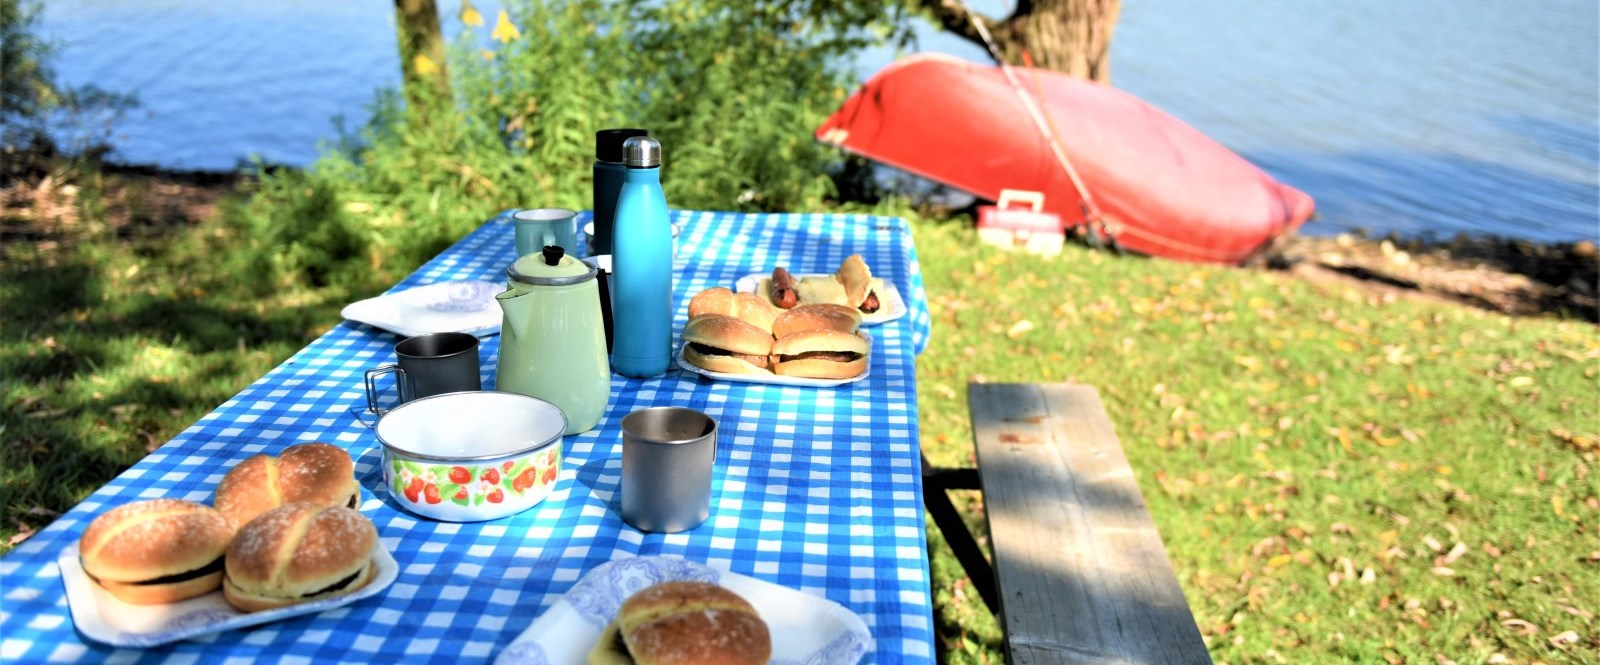 blue picnic table with pots and burgers near a lake